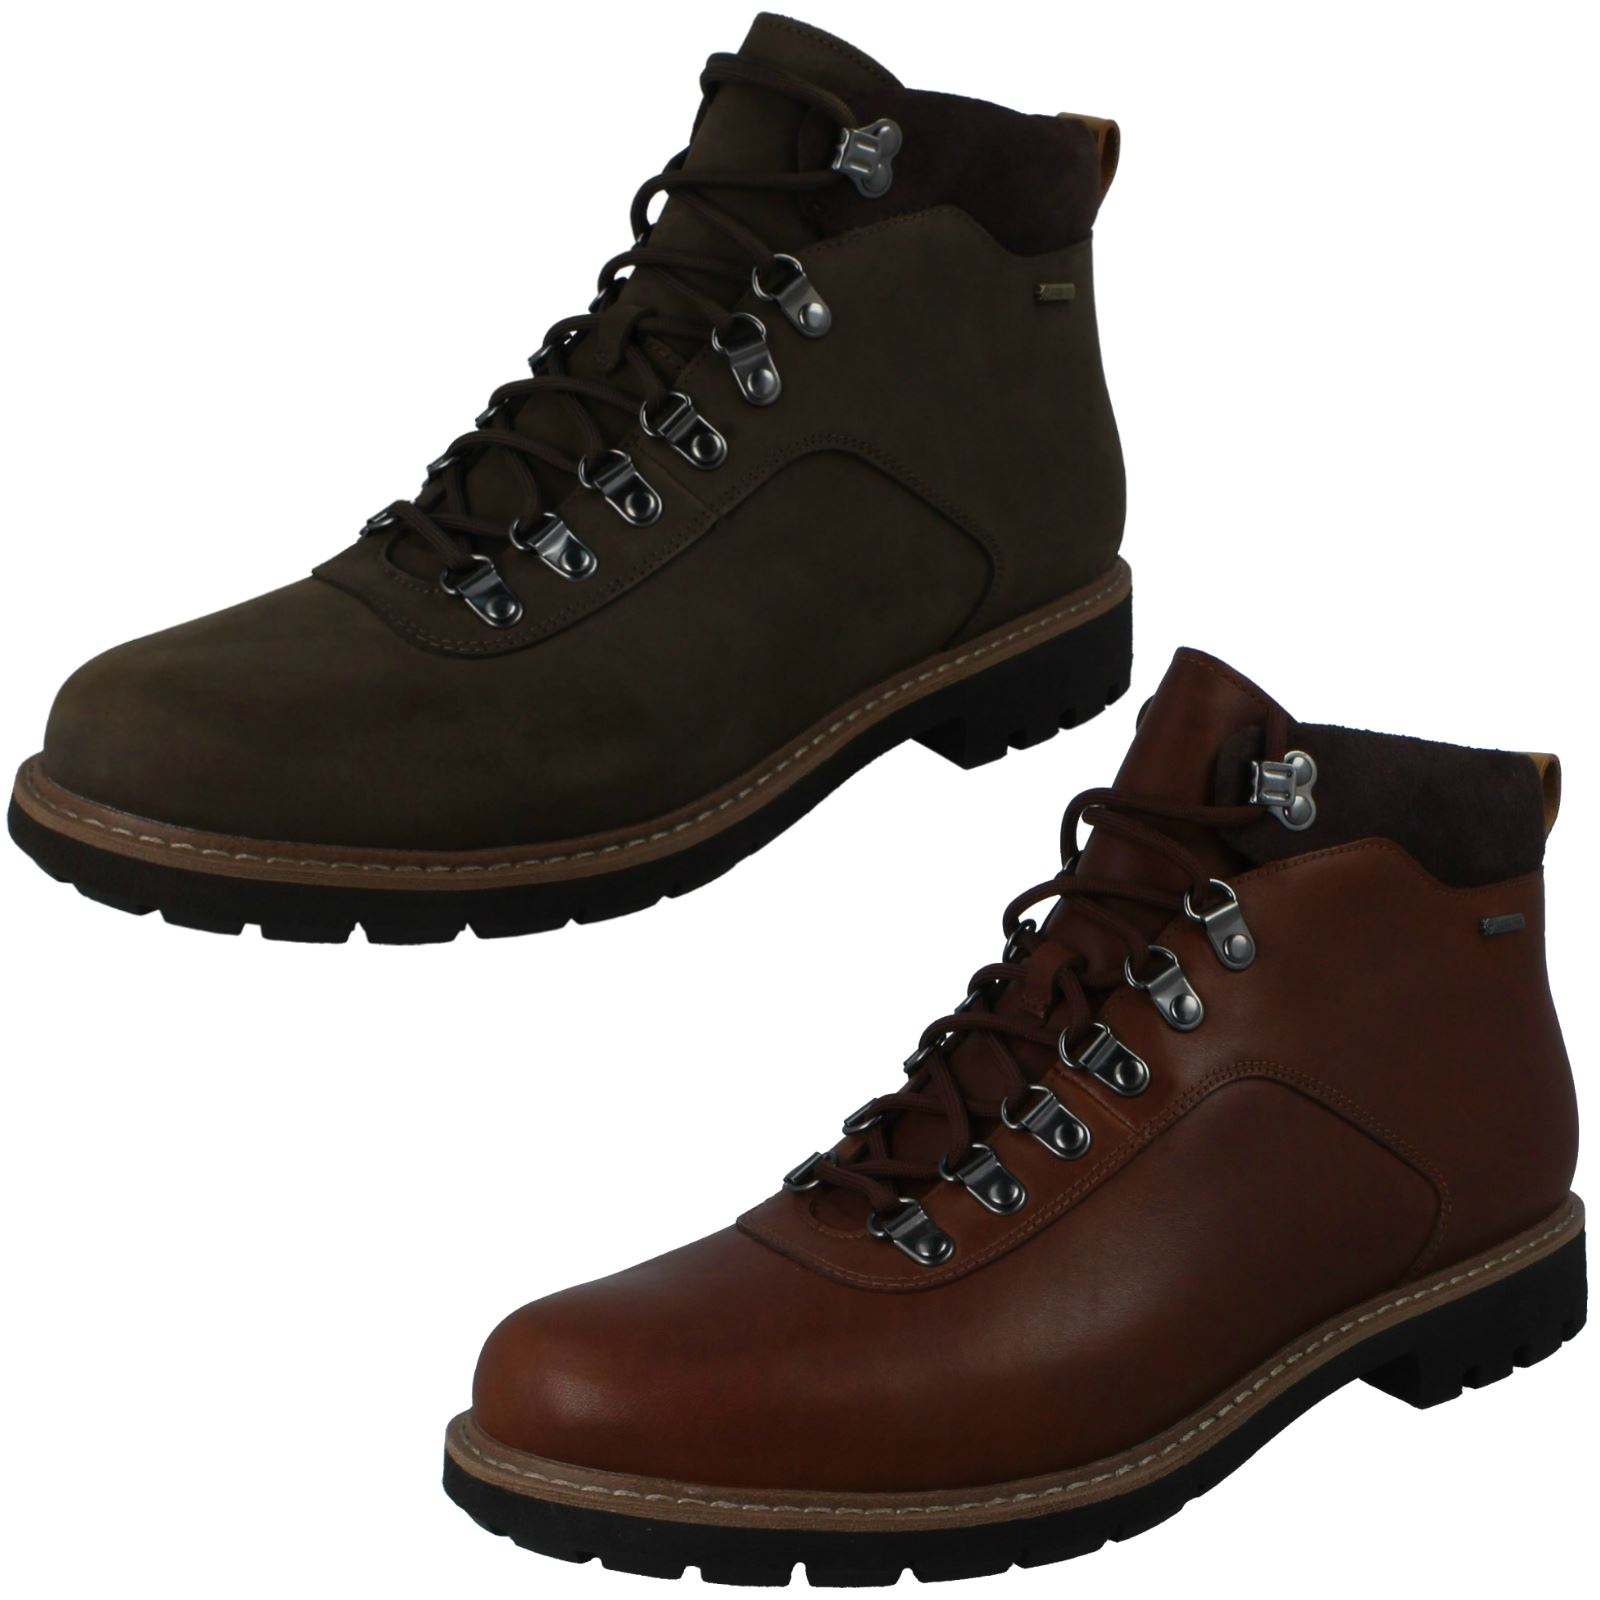 Mens Clarks Gore-Tex Ankle Boots